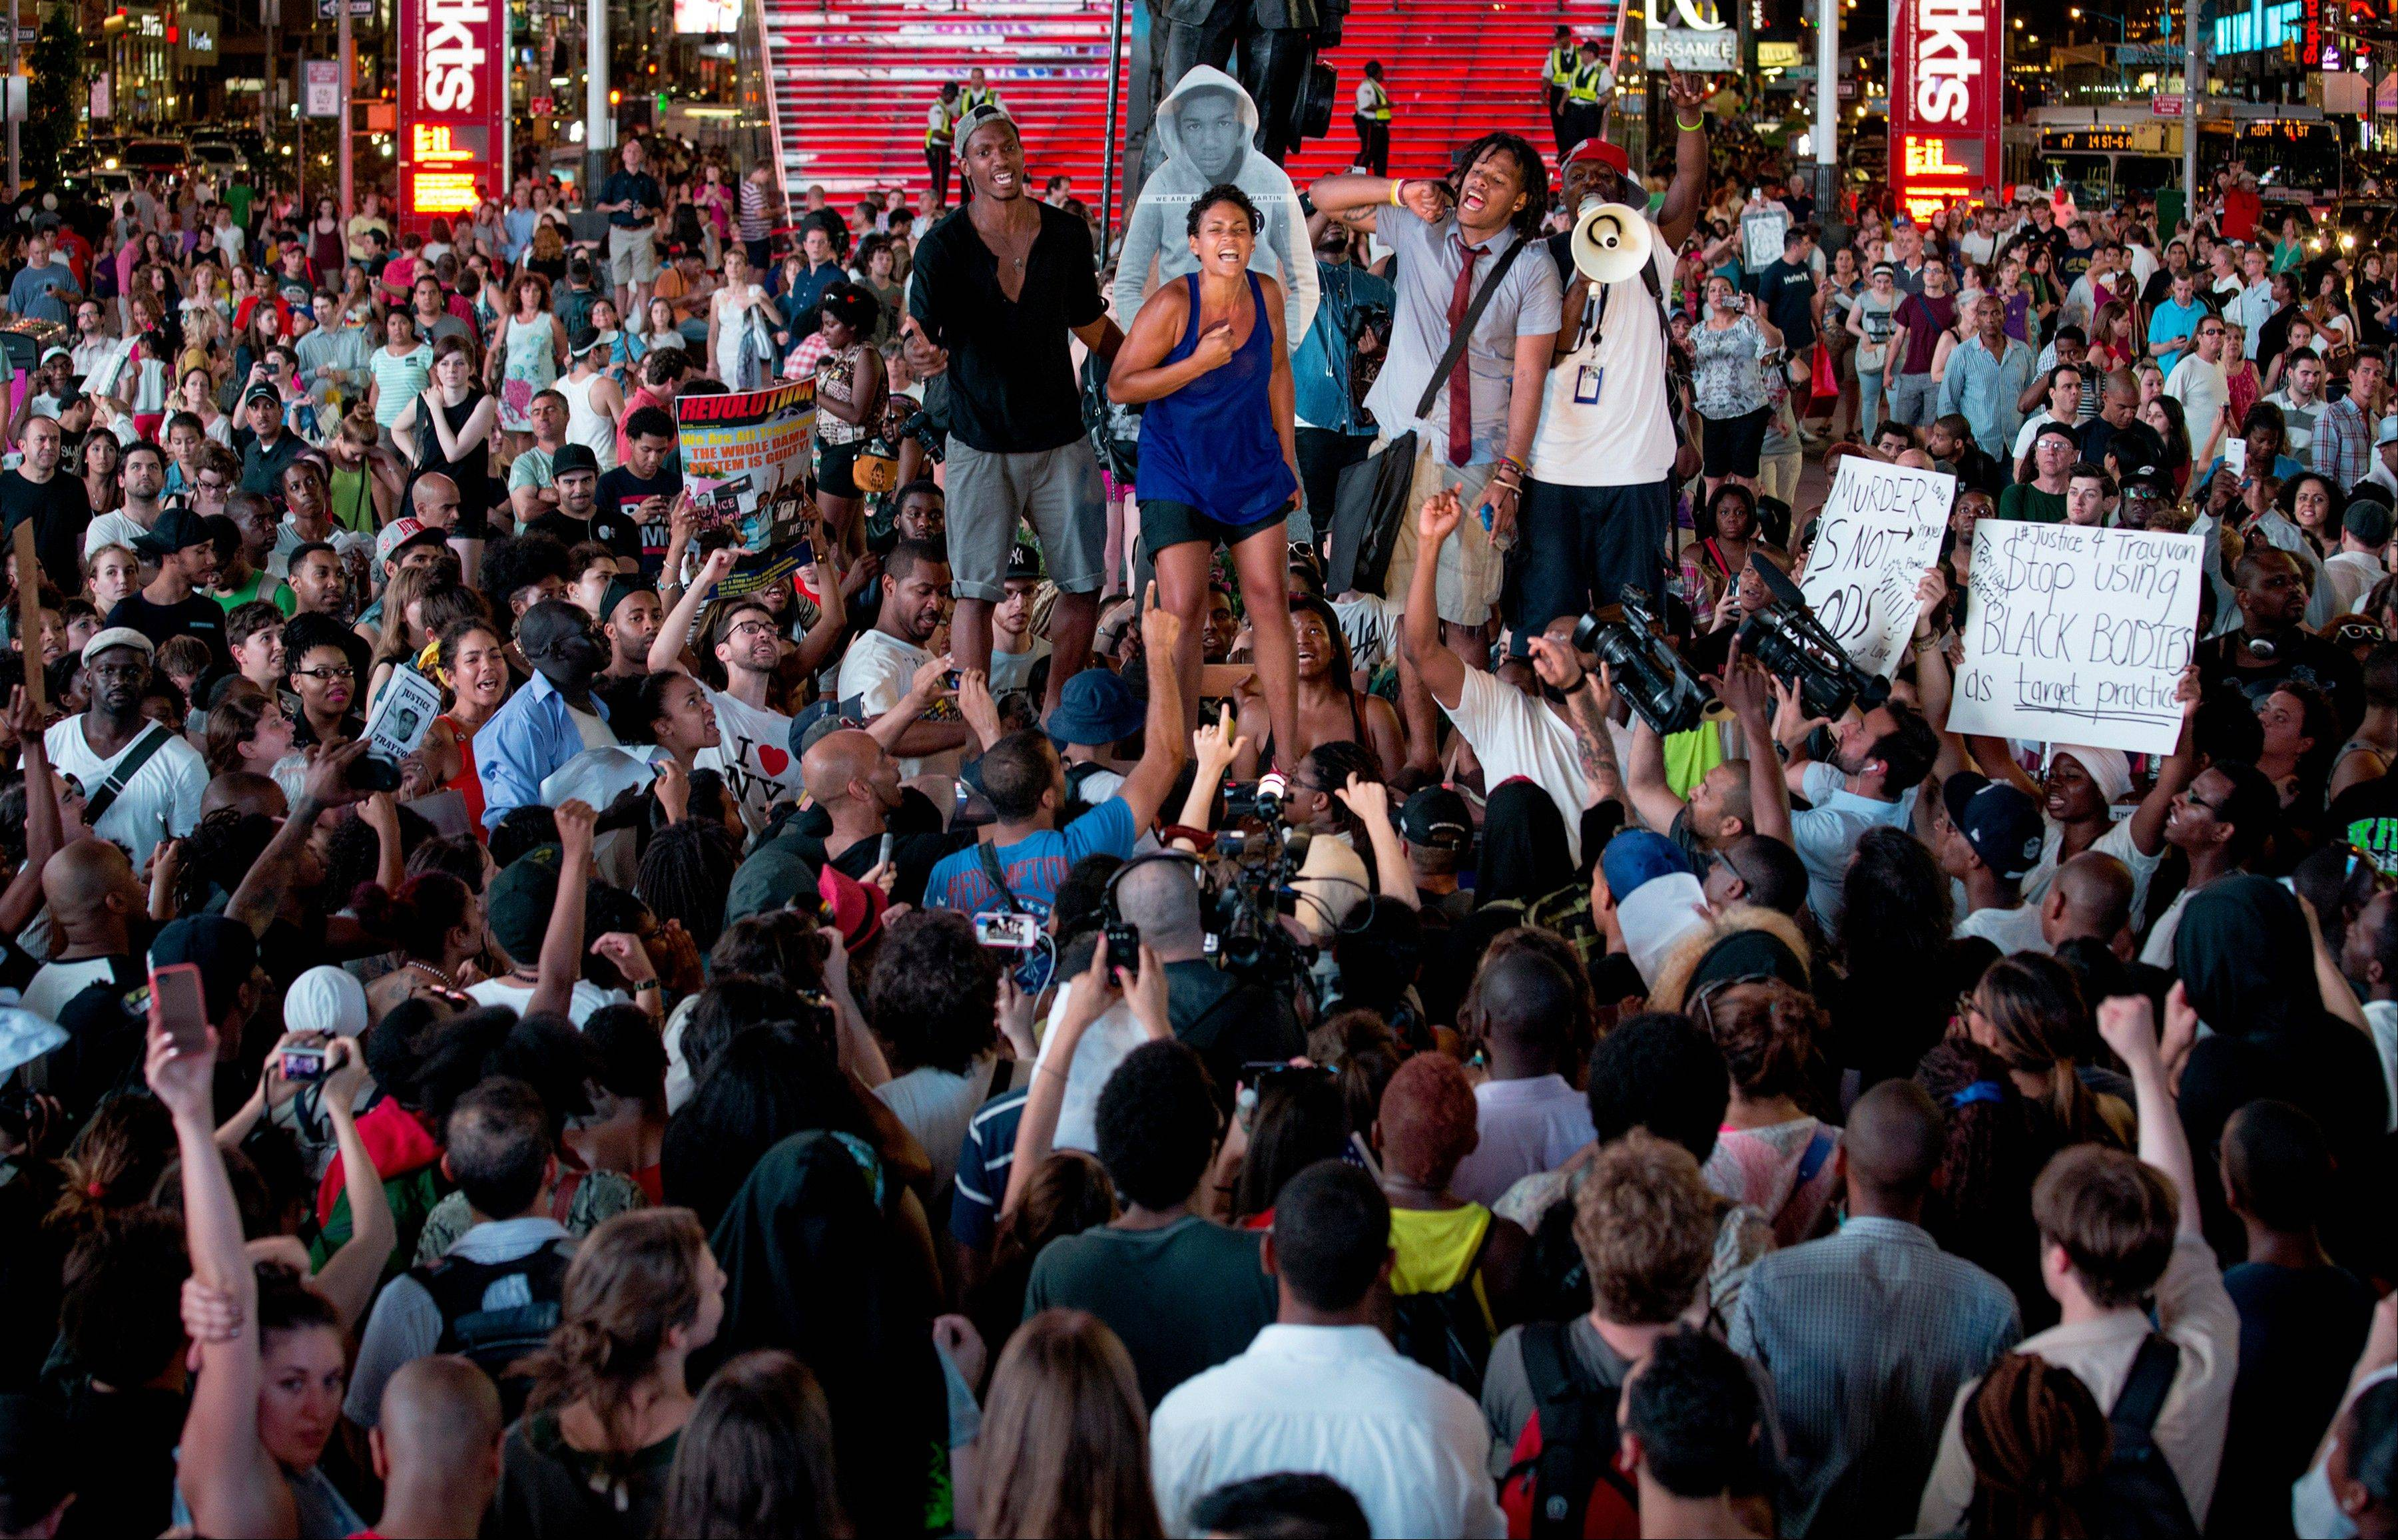 Throngs of marches gather on Times Square as they listen to a speaker Sunday in New York for a protest against the acquittal of volunteer neighborhood watch member George Zimmerman in the 2012 killing of 17-year-old Trayvon Martin.